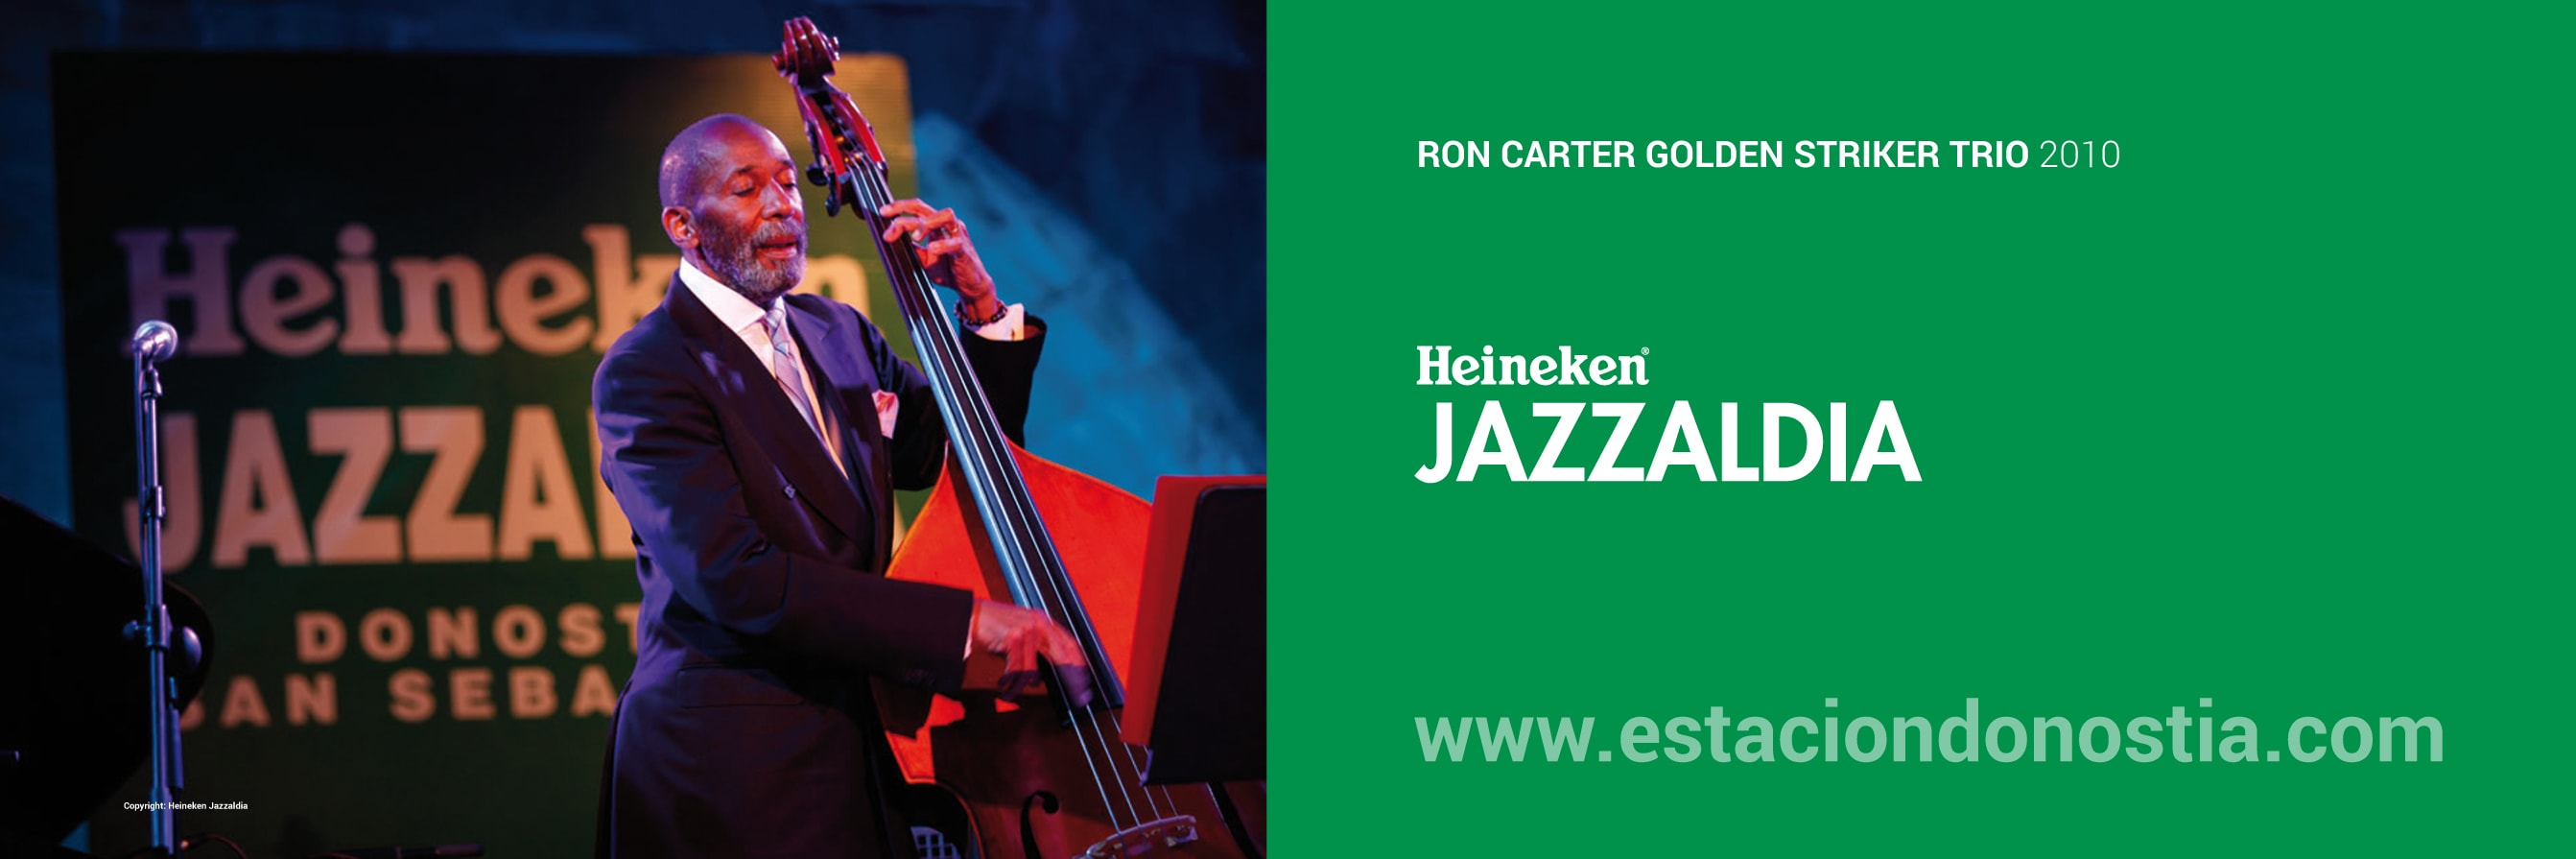 Ron Carter Golden Striker Trio (2010)